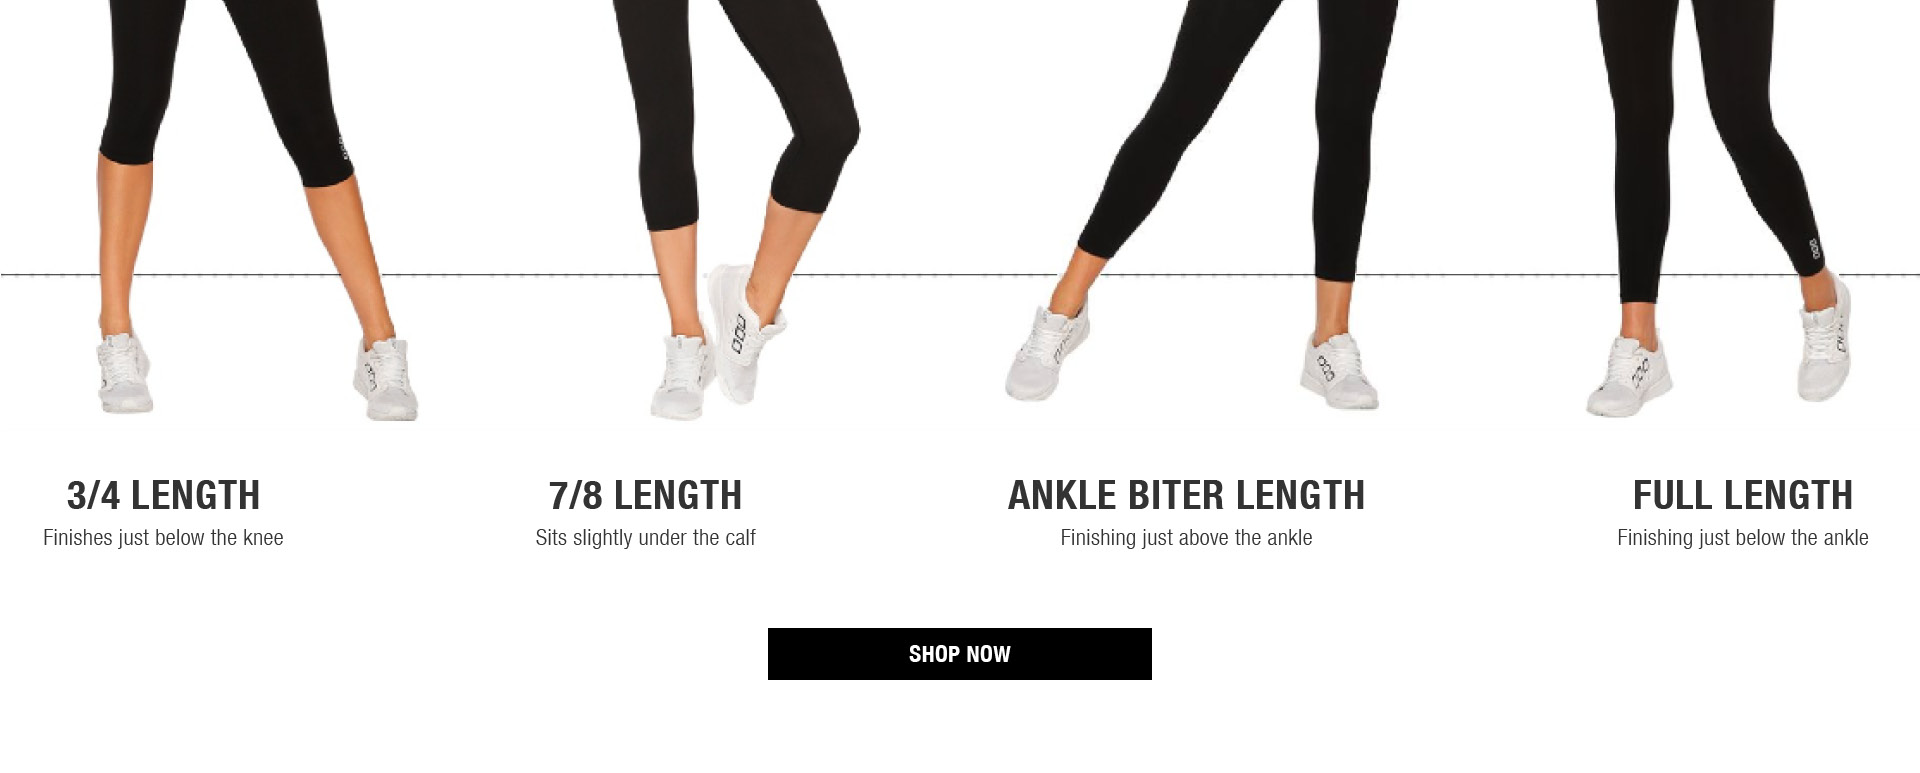 3/4 length - finishes just below the knee. 7/8 length - sits slightly under the calf. Ankle Biter length - Finishing just above the ankle. Full length - finishing just below the ankle. Shop now